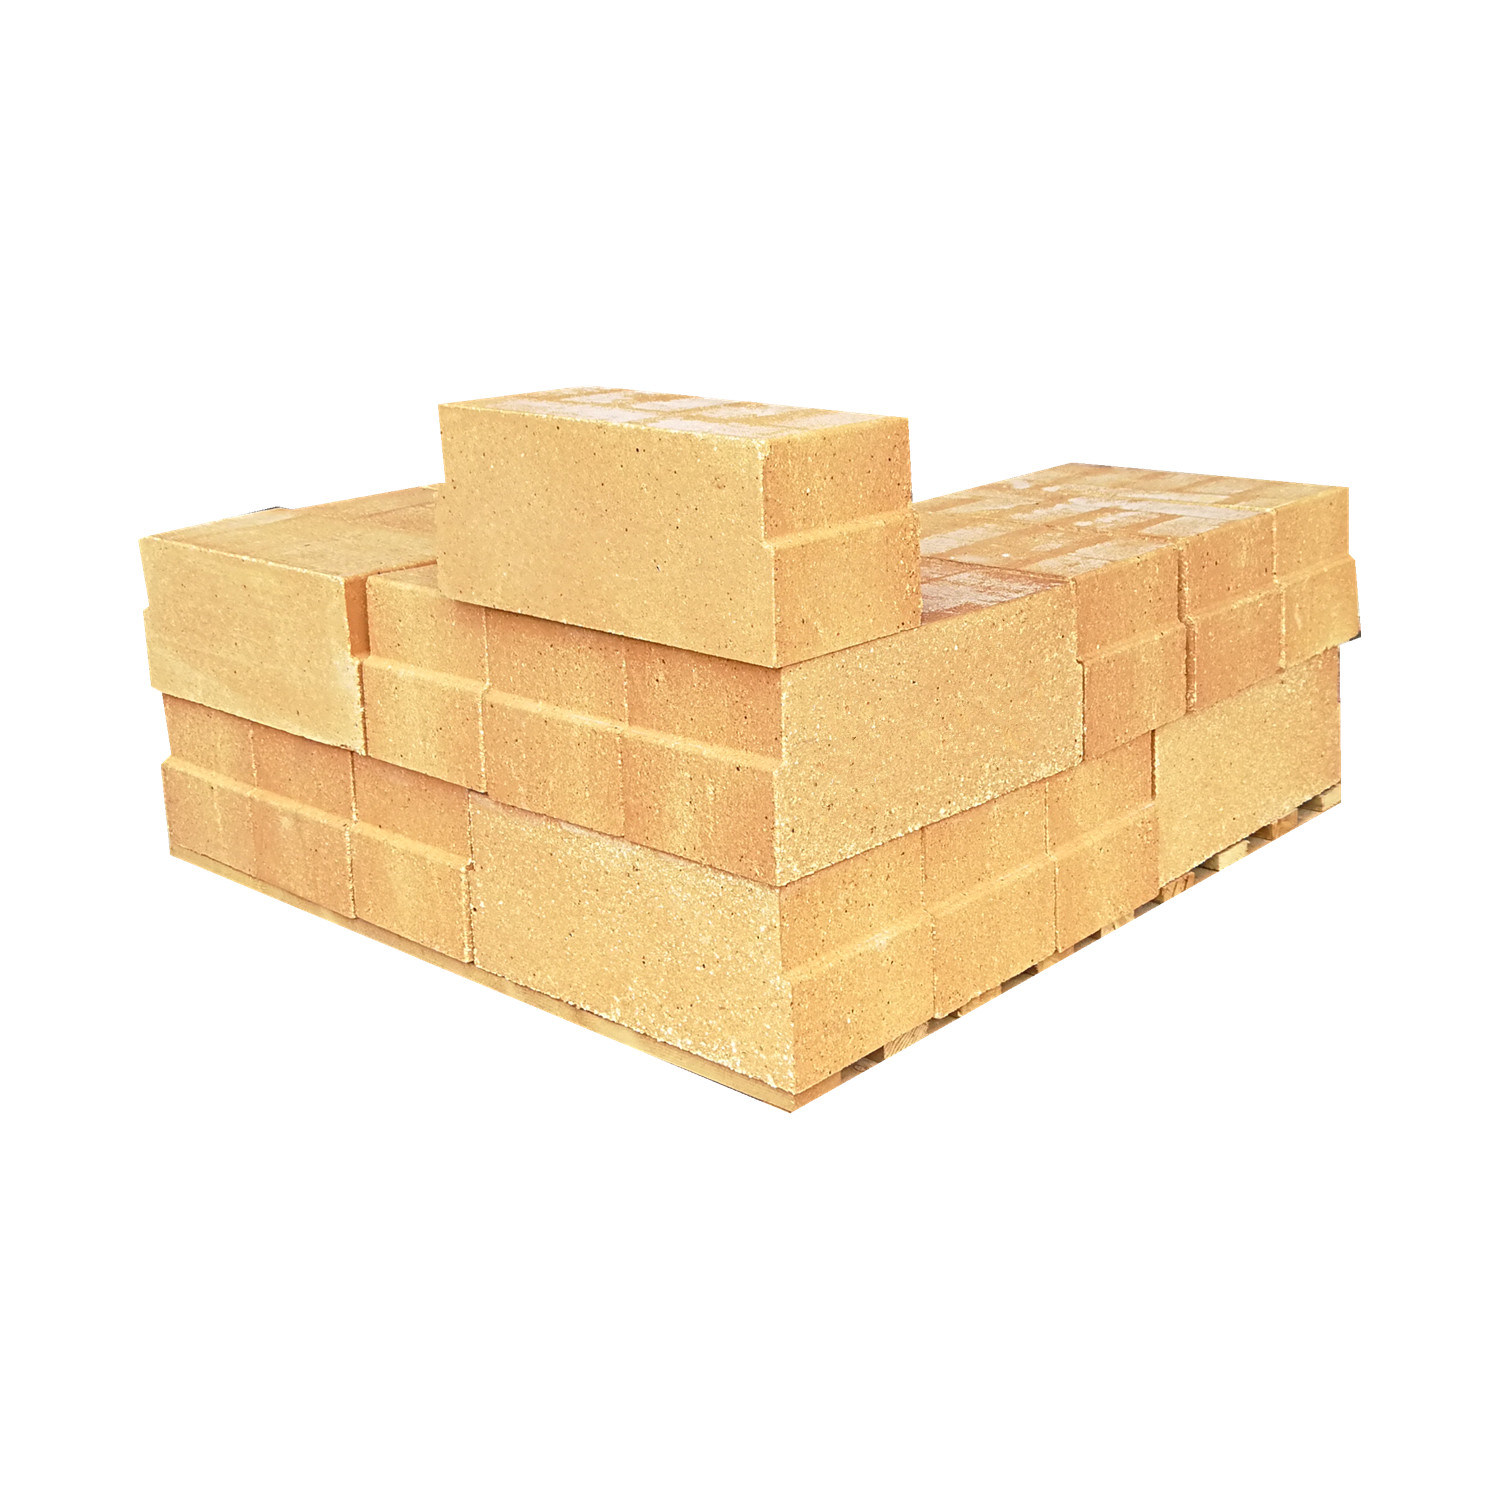 Refractory Brick Wholesale Refractory Alumina Bricks Buy Reliable Refractory